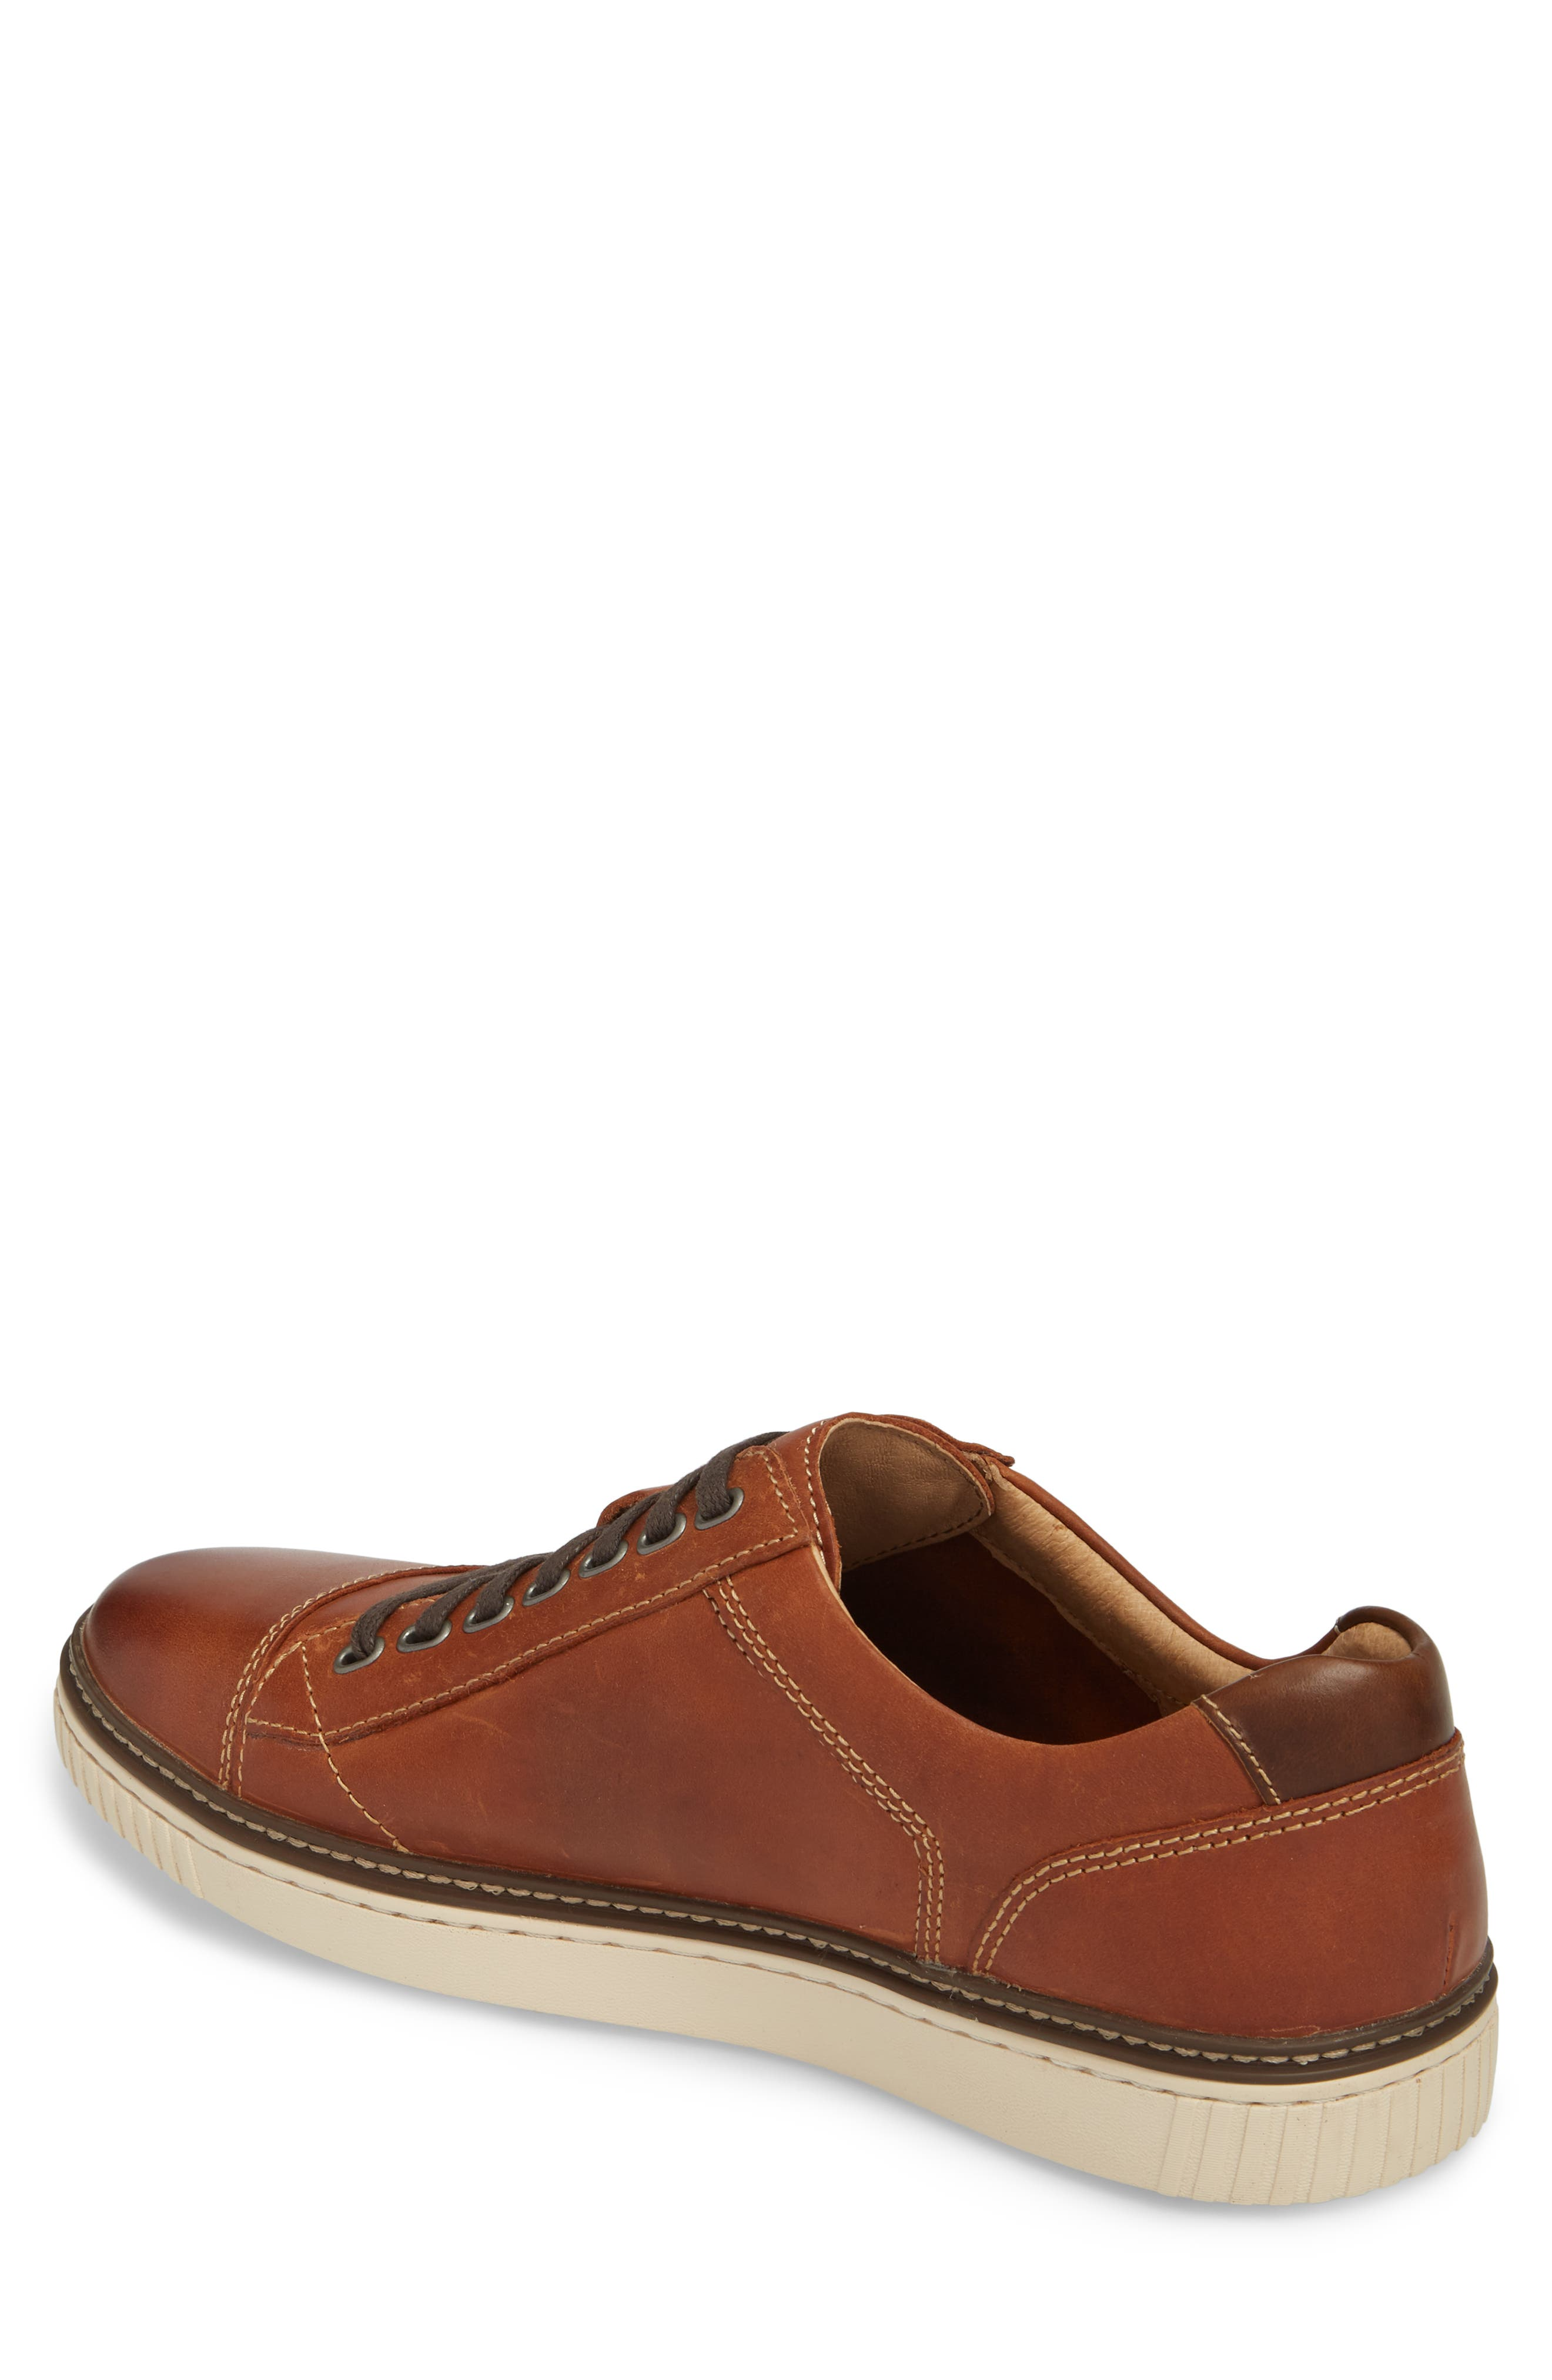 Wallace Low Top Sneaker,                             Alternate thumbnail 2, color,                             TAN NUBUCK